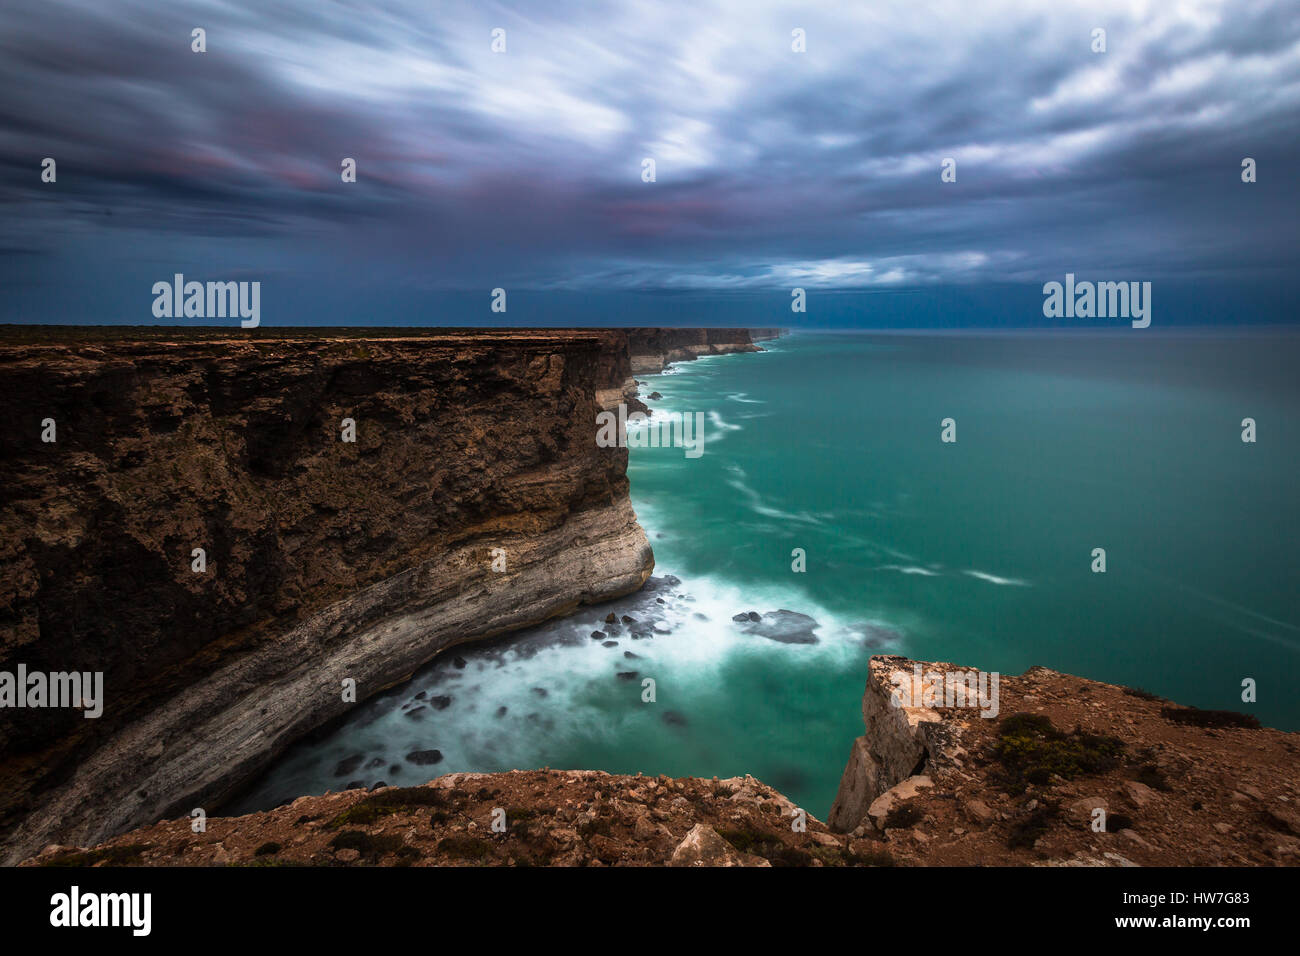 The Great Australian Bight - Bunda Cliffs - Nullarbor Plains, South Australia - Stock Image